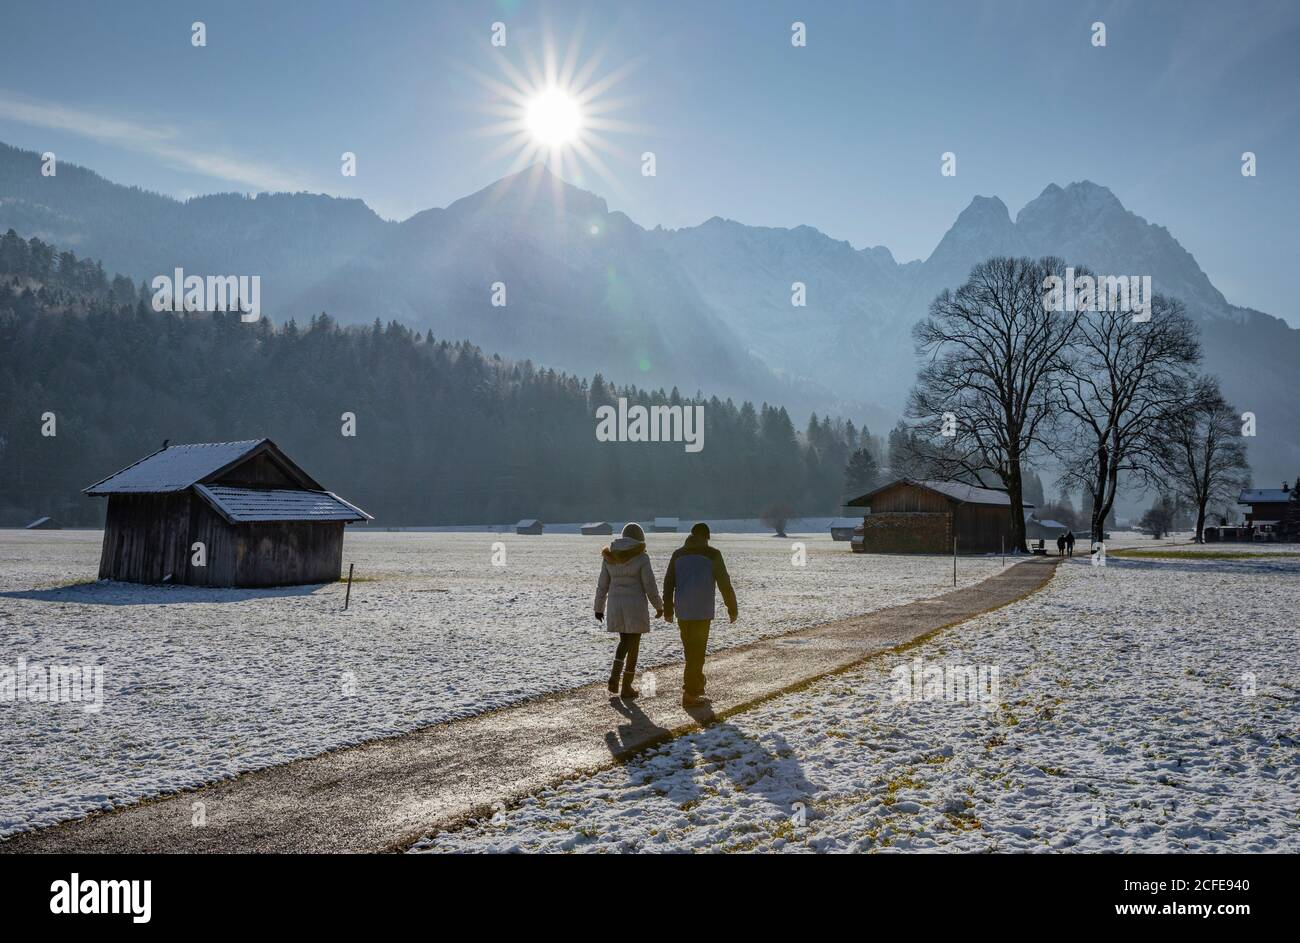 Man and woman on a winter walk on a dirt road in Garmisch-Partenkirchen, looking towards the Wetterstein Mountains with the Alpspitze and wax stones, Stock Photo